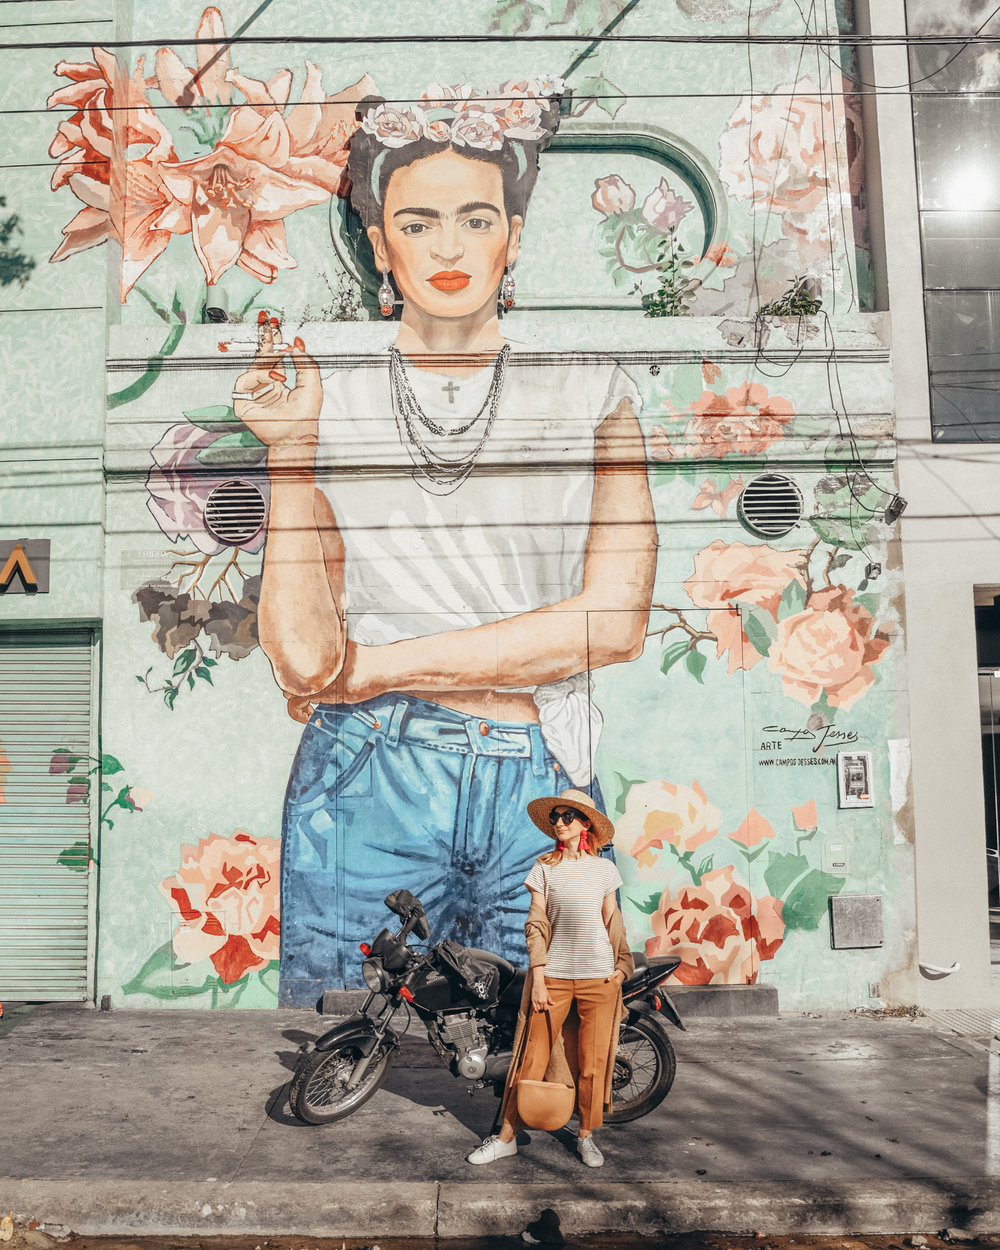 The famous Frida mural